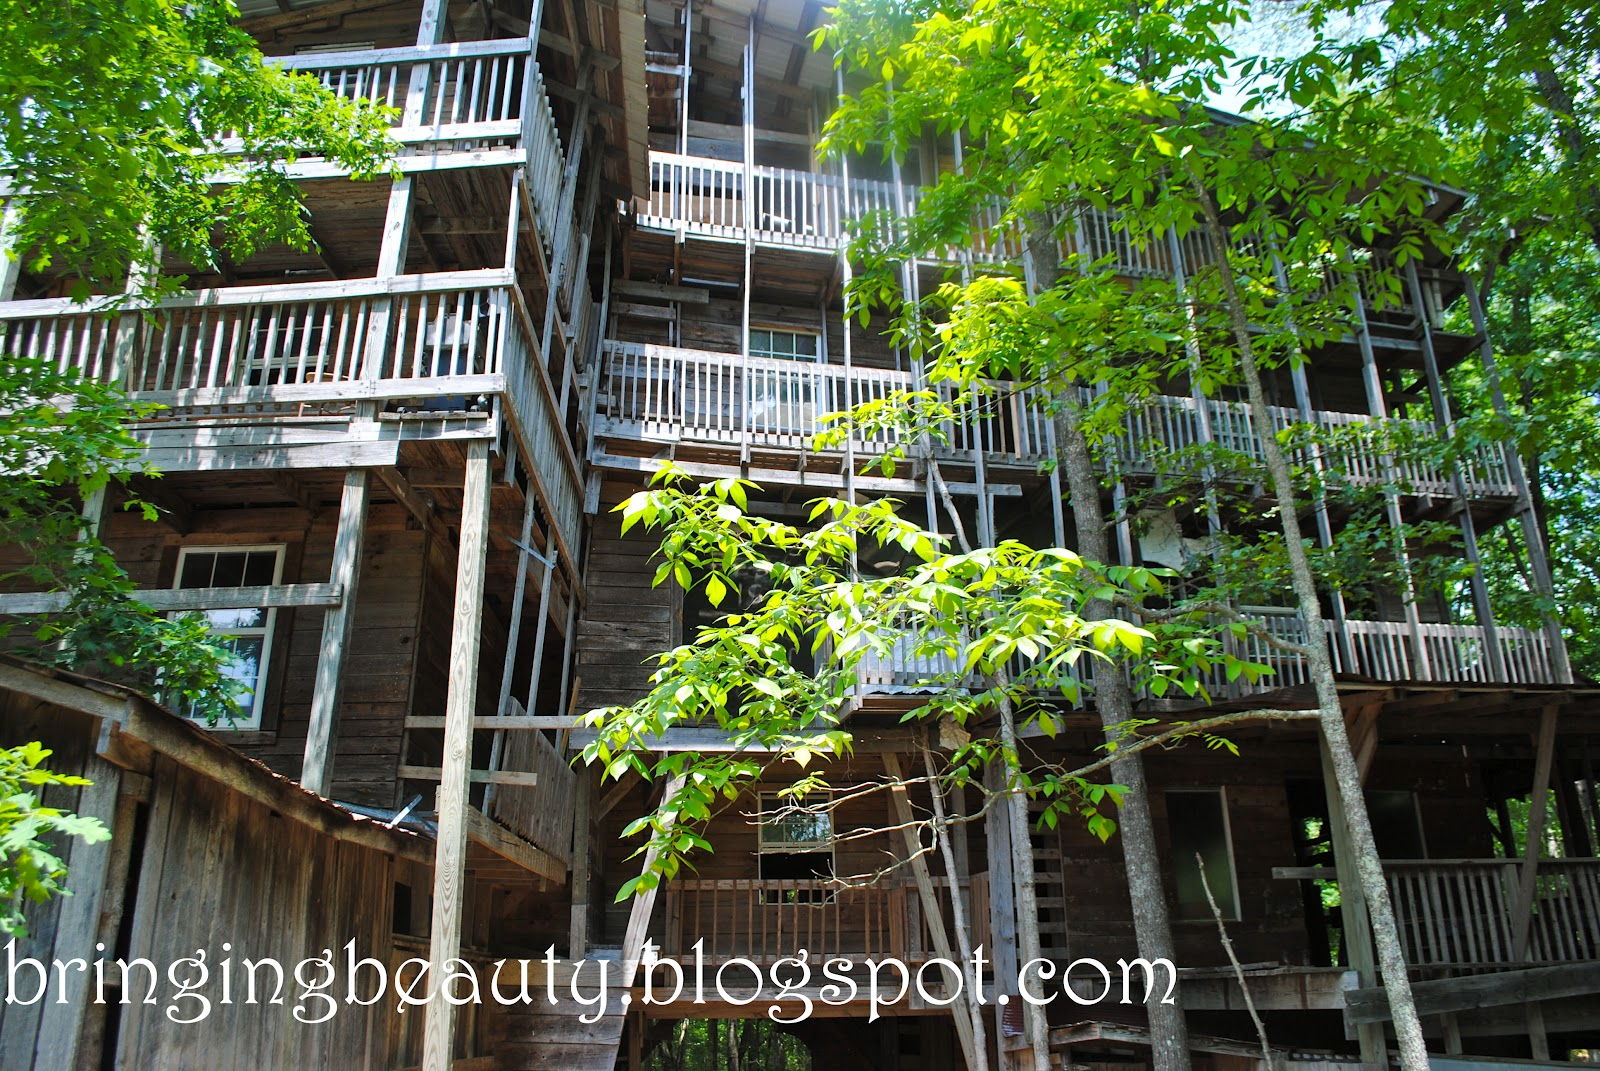 Biggest House In The World 2012 bringing beauty: america's biggest tree house!!